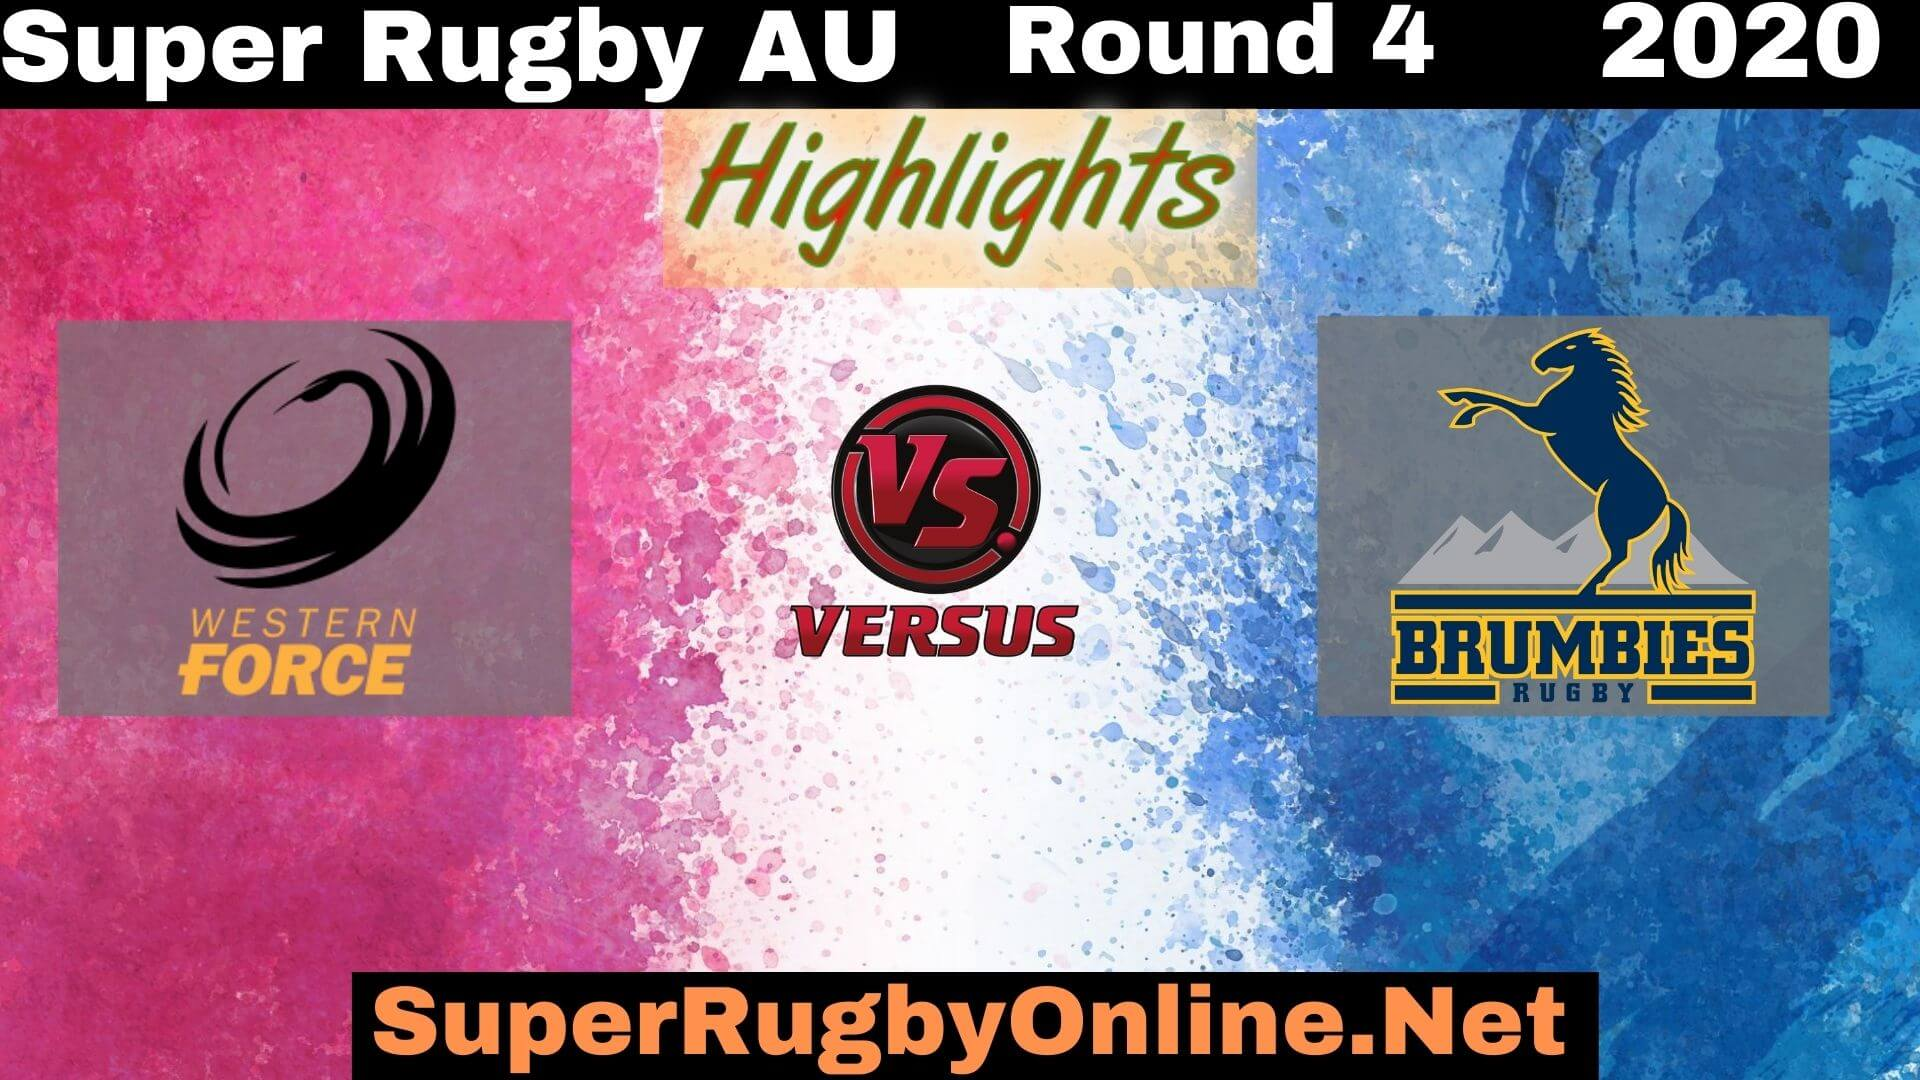 Force Vs Brumbies Rd 4 Highlights 2020 Super Rugby AU